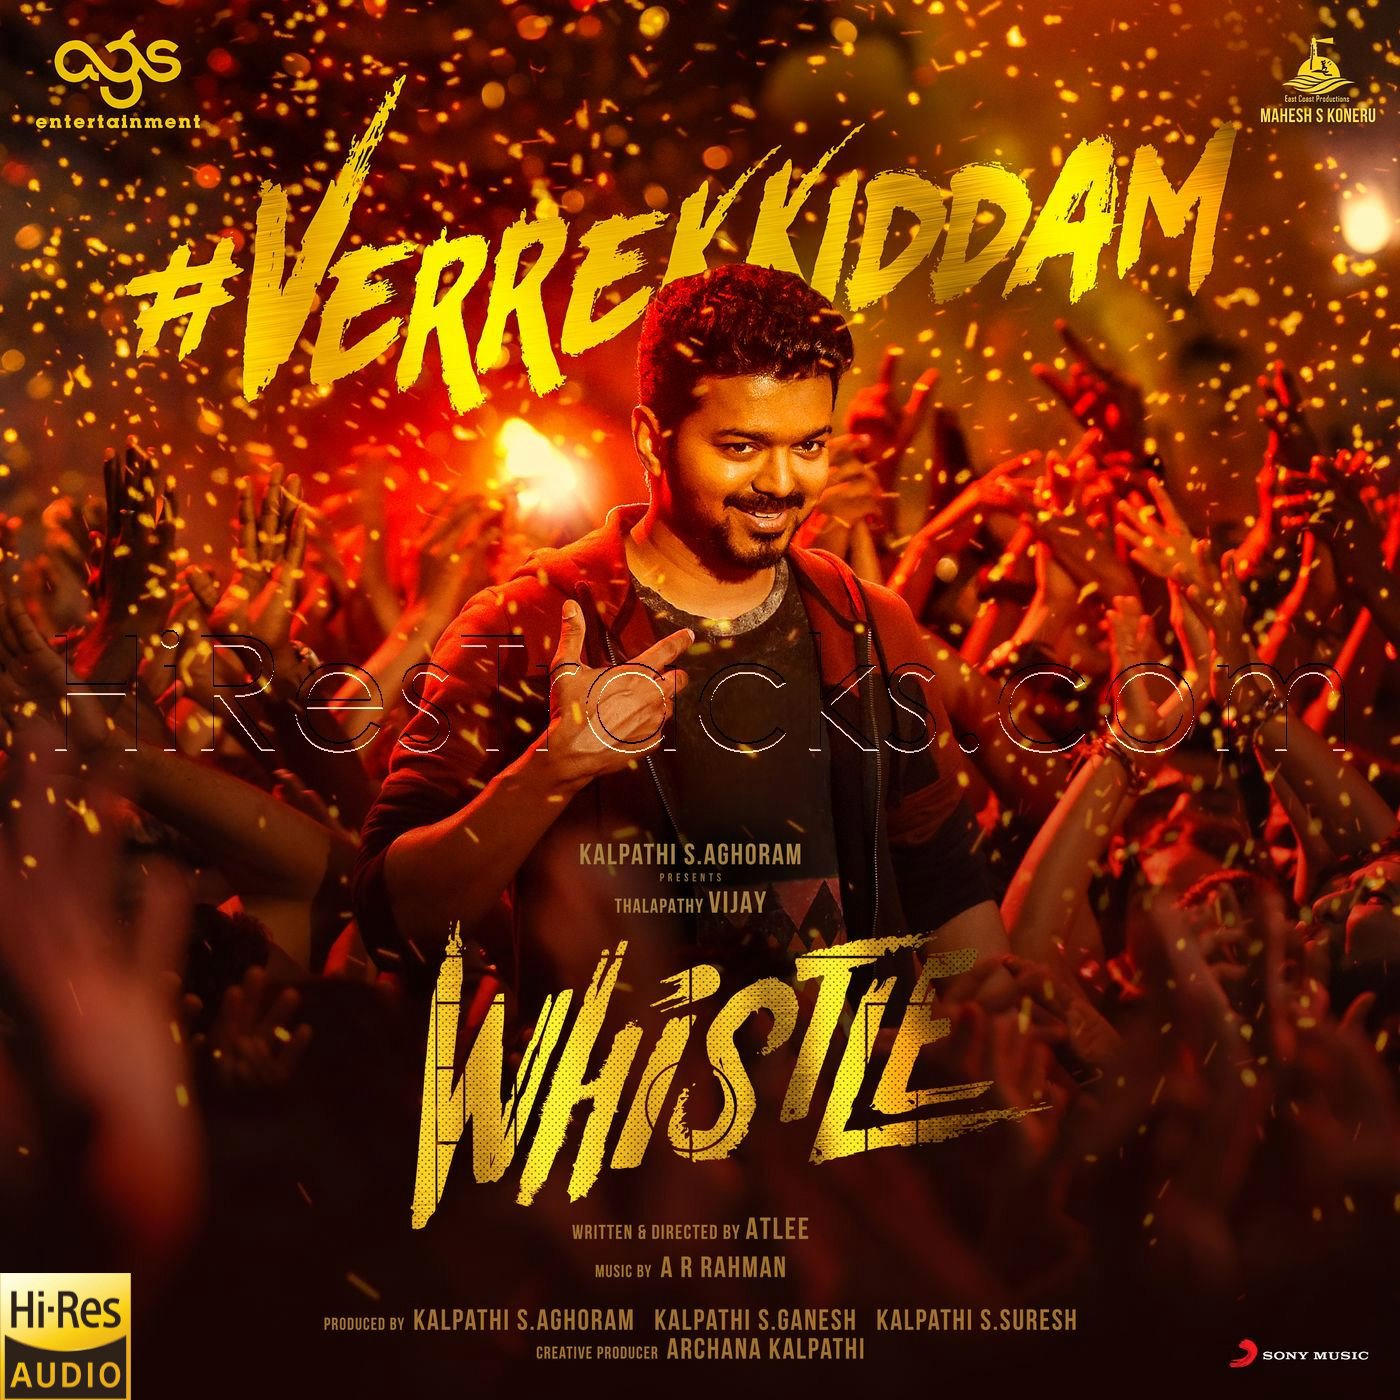 Verrekkiddam (From Whistle) (2019) (A.R. Rahman) (Sony Music) [24 BIT – 48 KHZ] [Digital-RIP-FLAC]